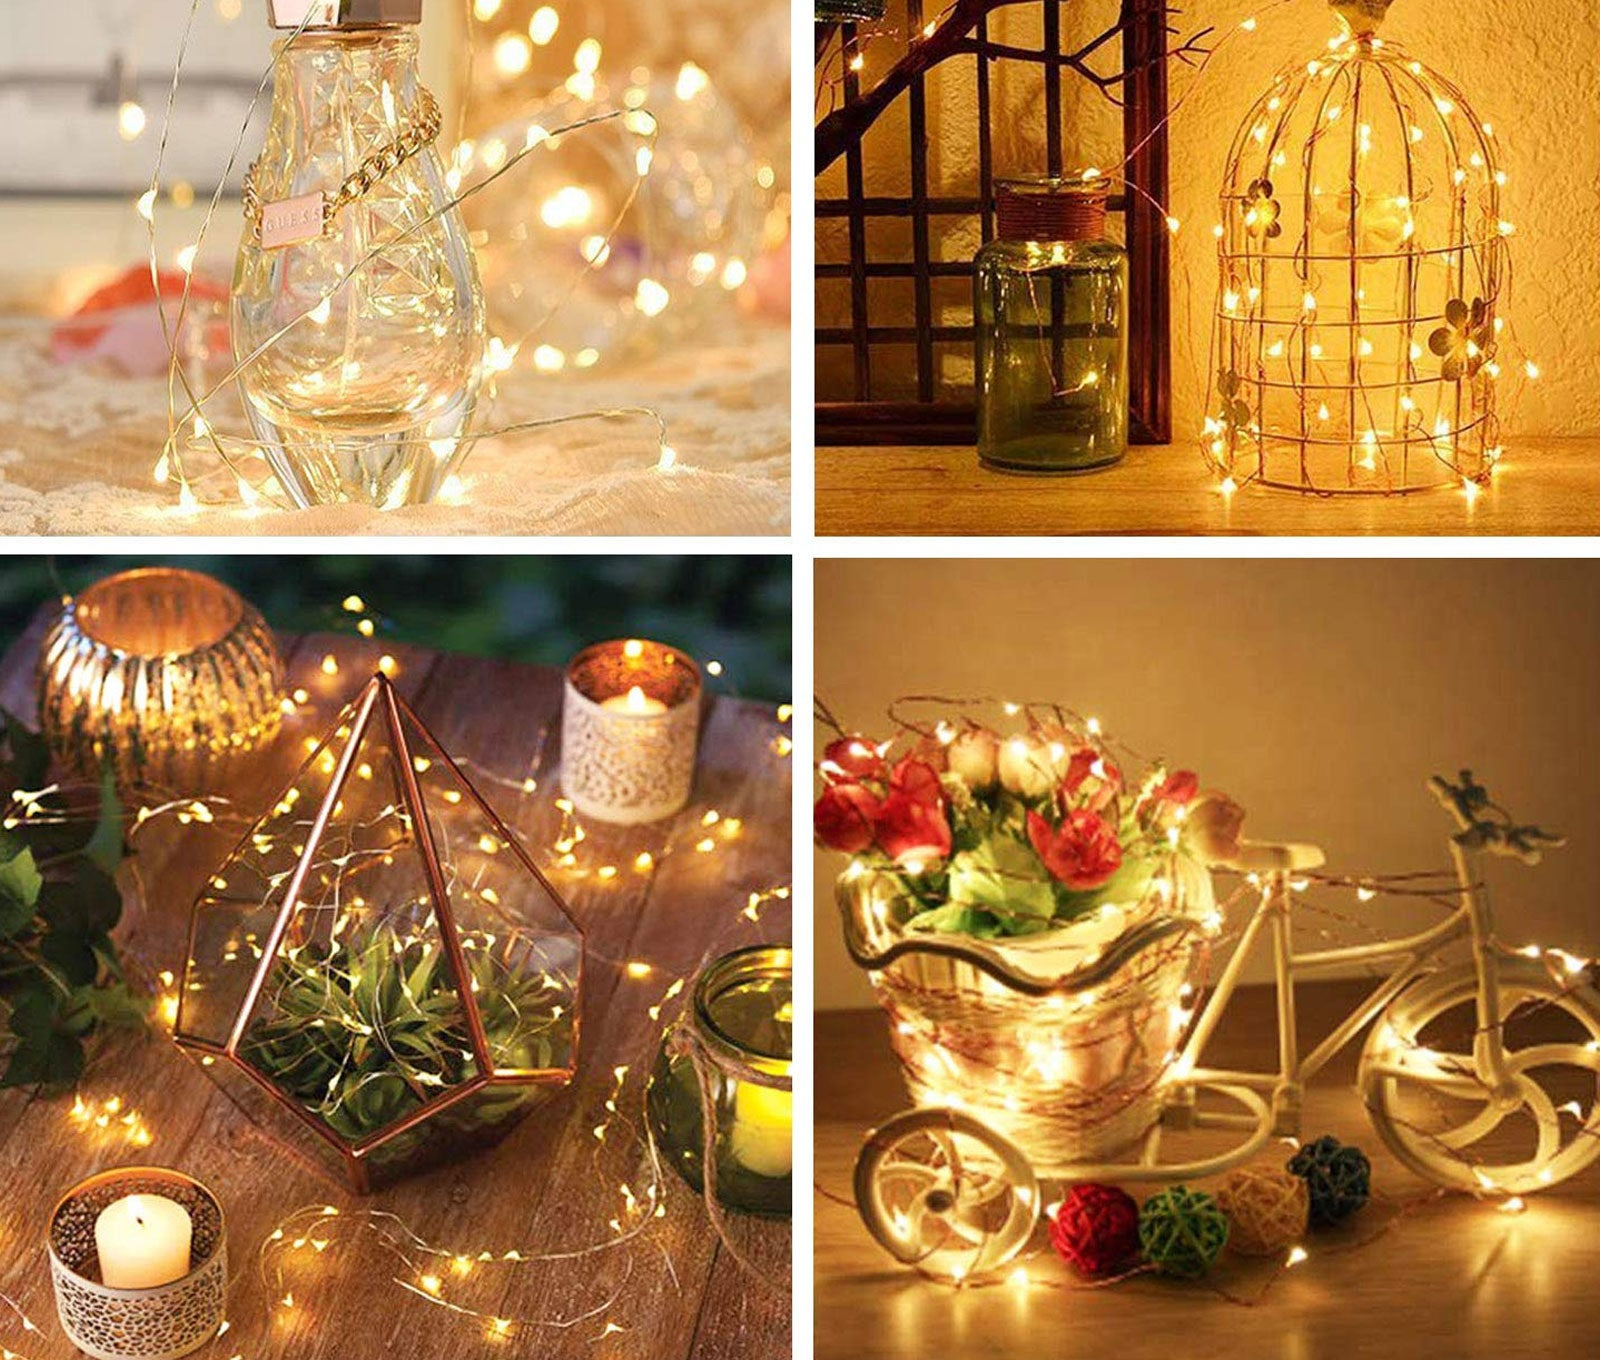 A vase, decorative bird cage, succulent terrarium, and decorate bike decor wrapped in the LED lights